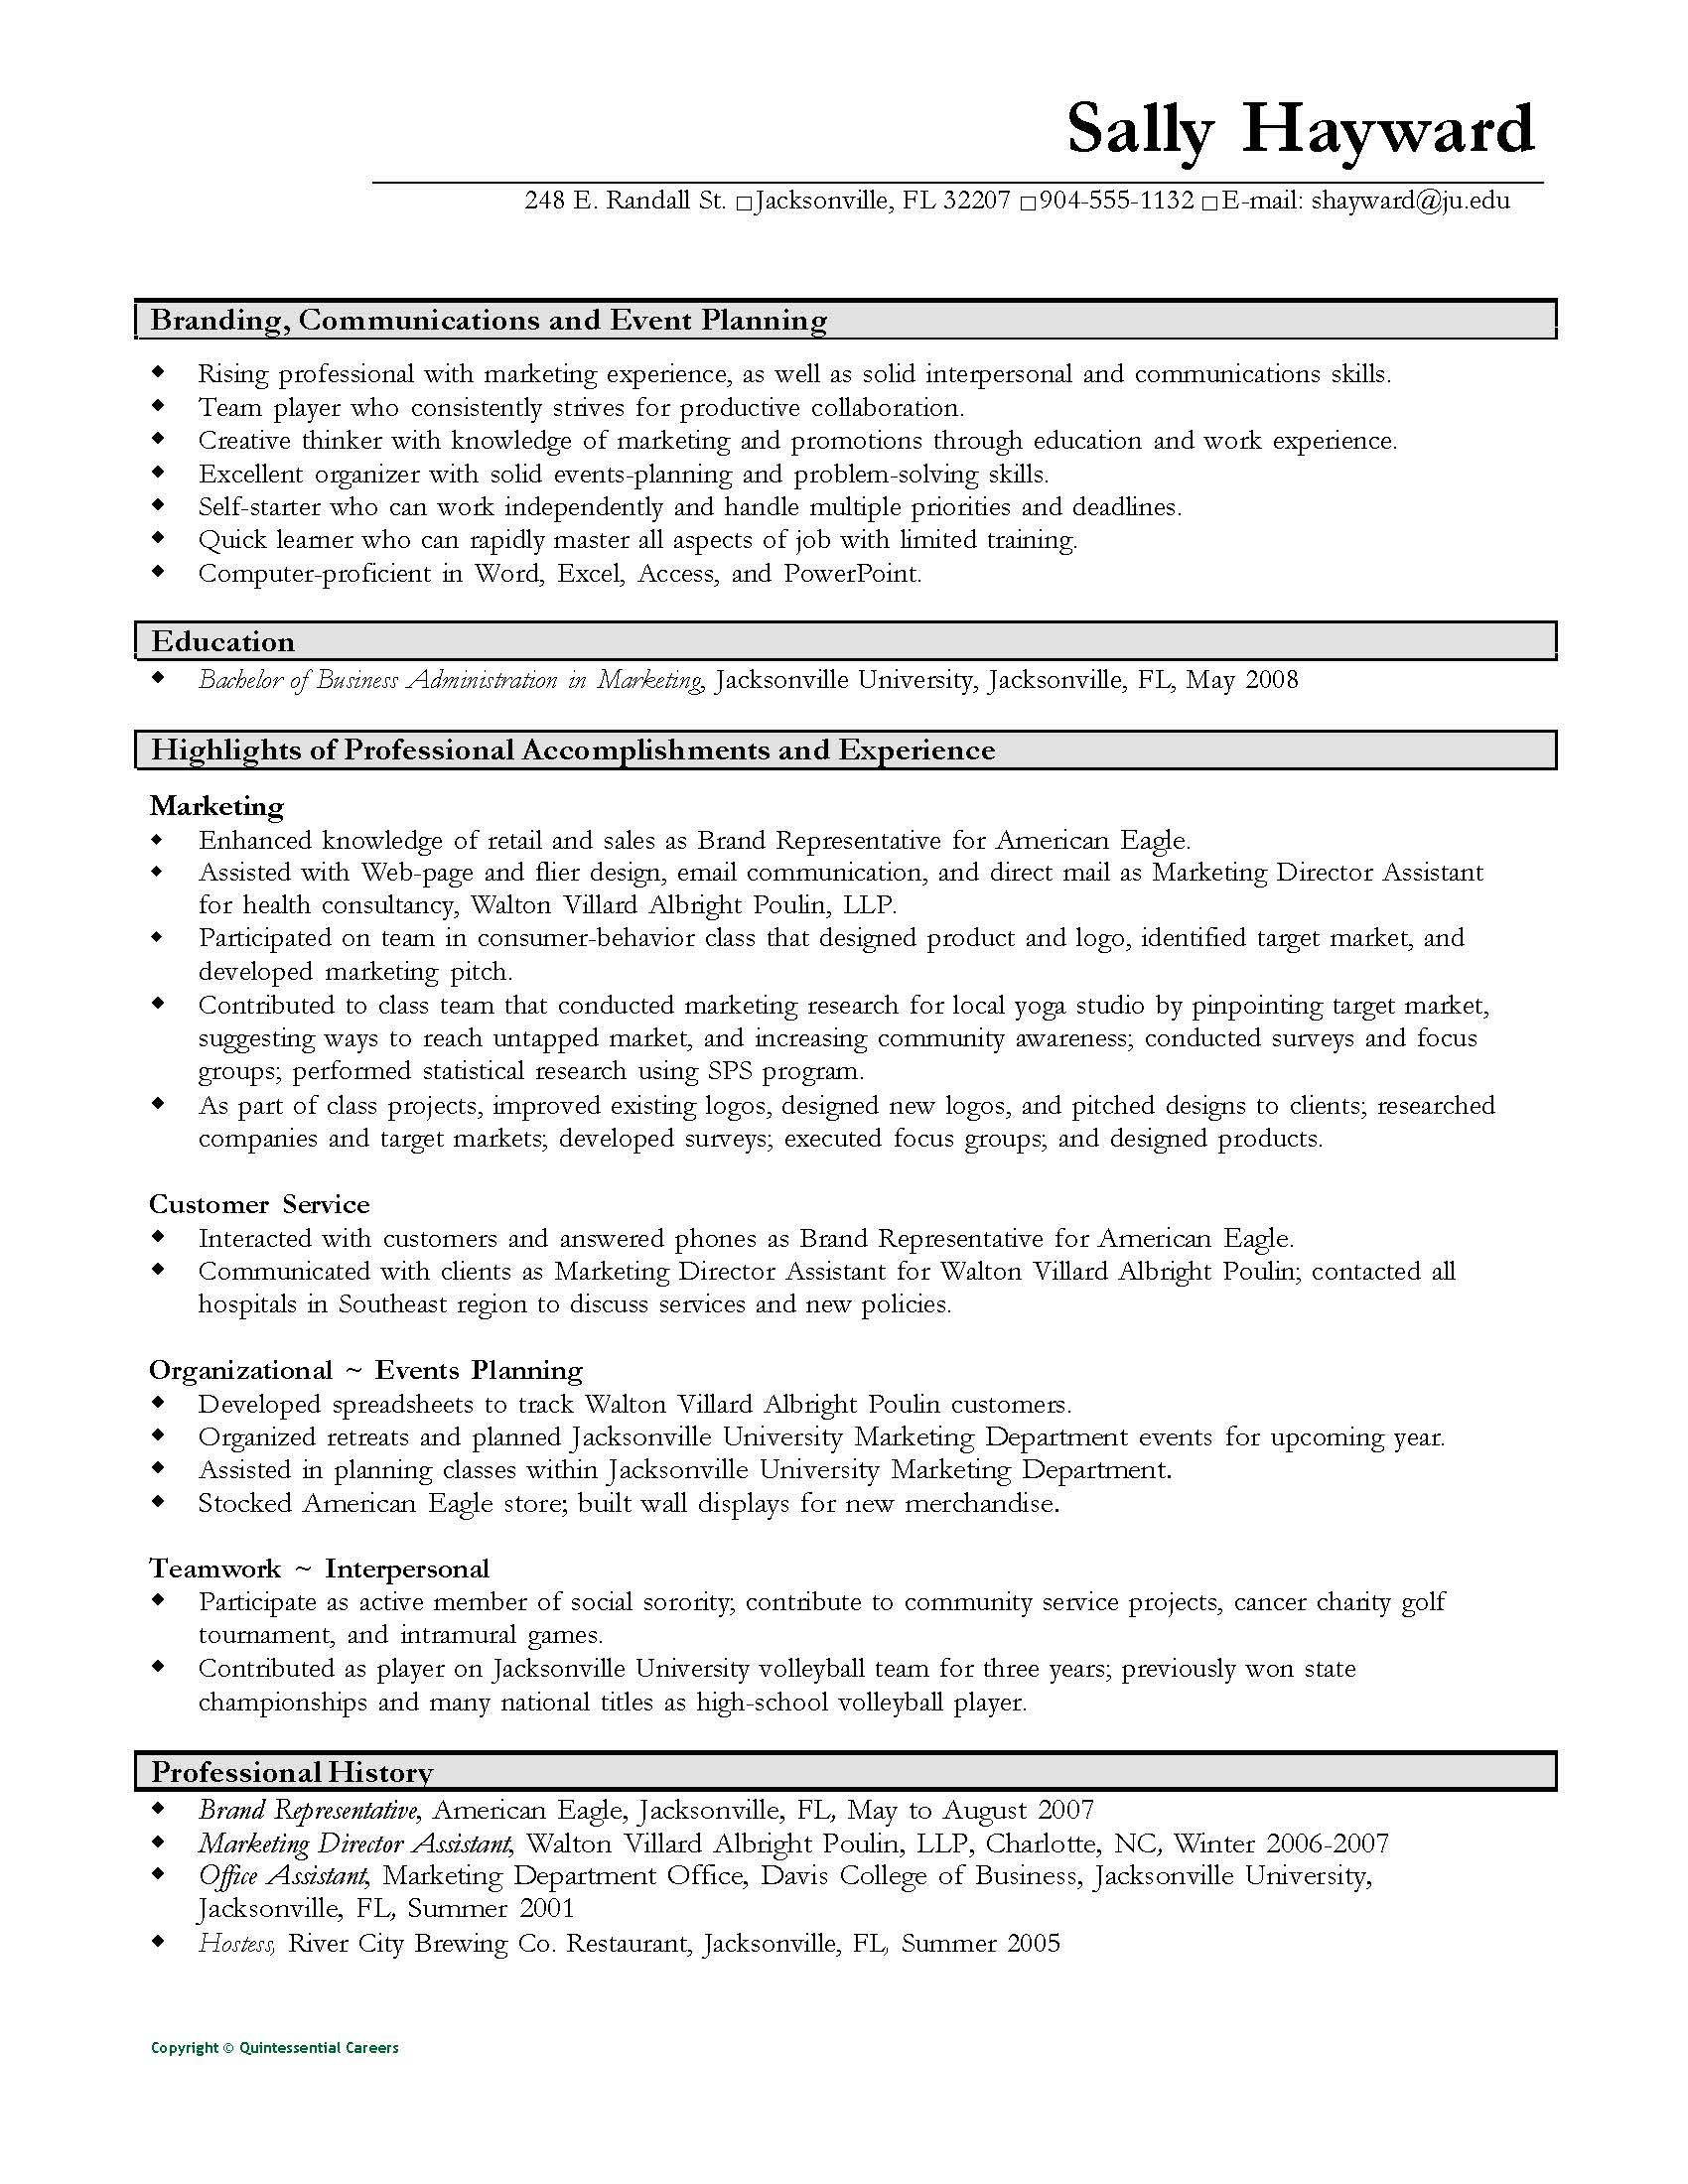 resumes and cover letters the ohio state university alumni functional resume